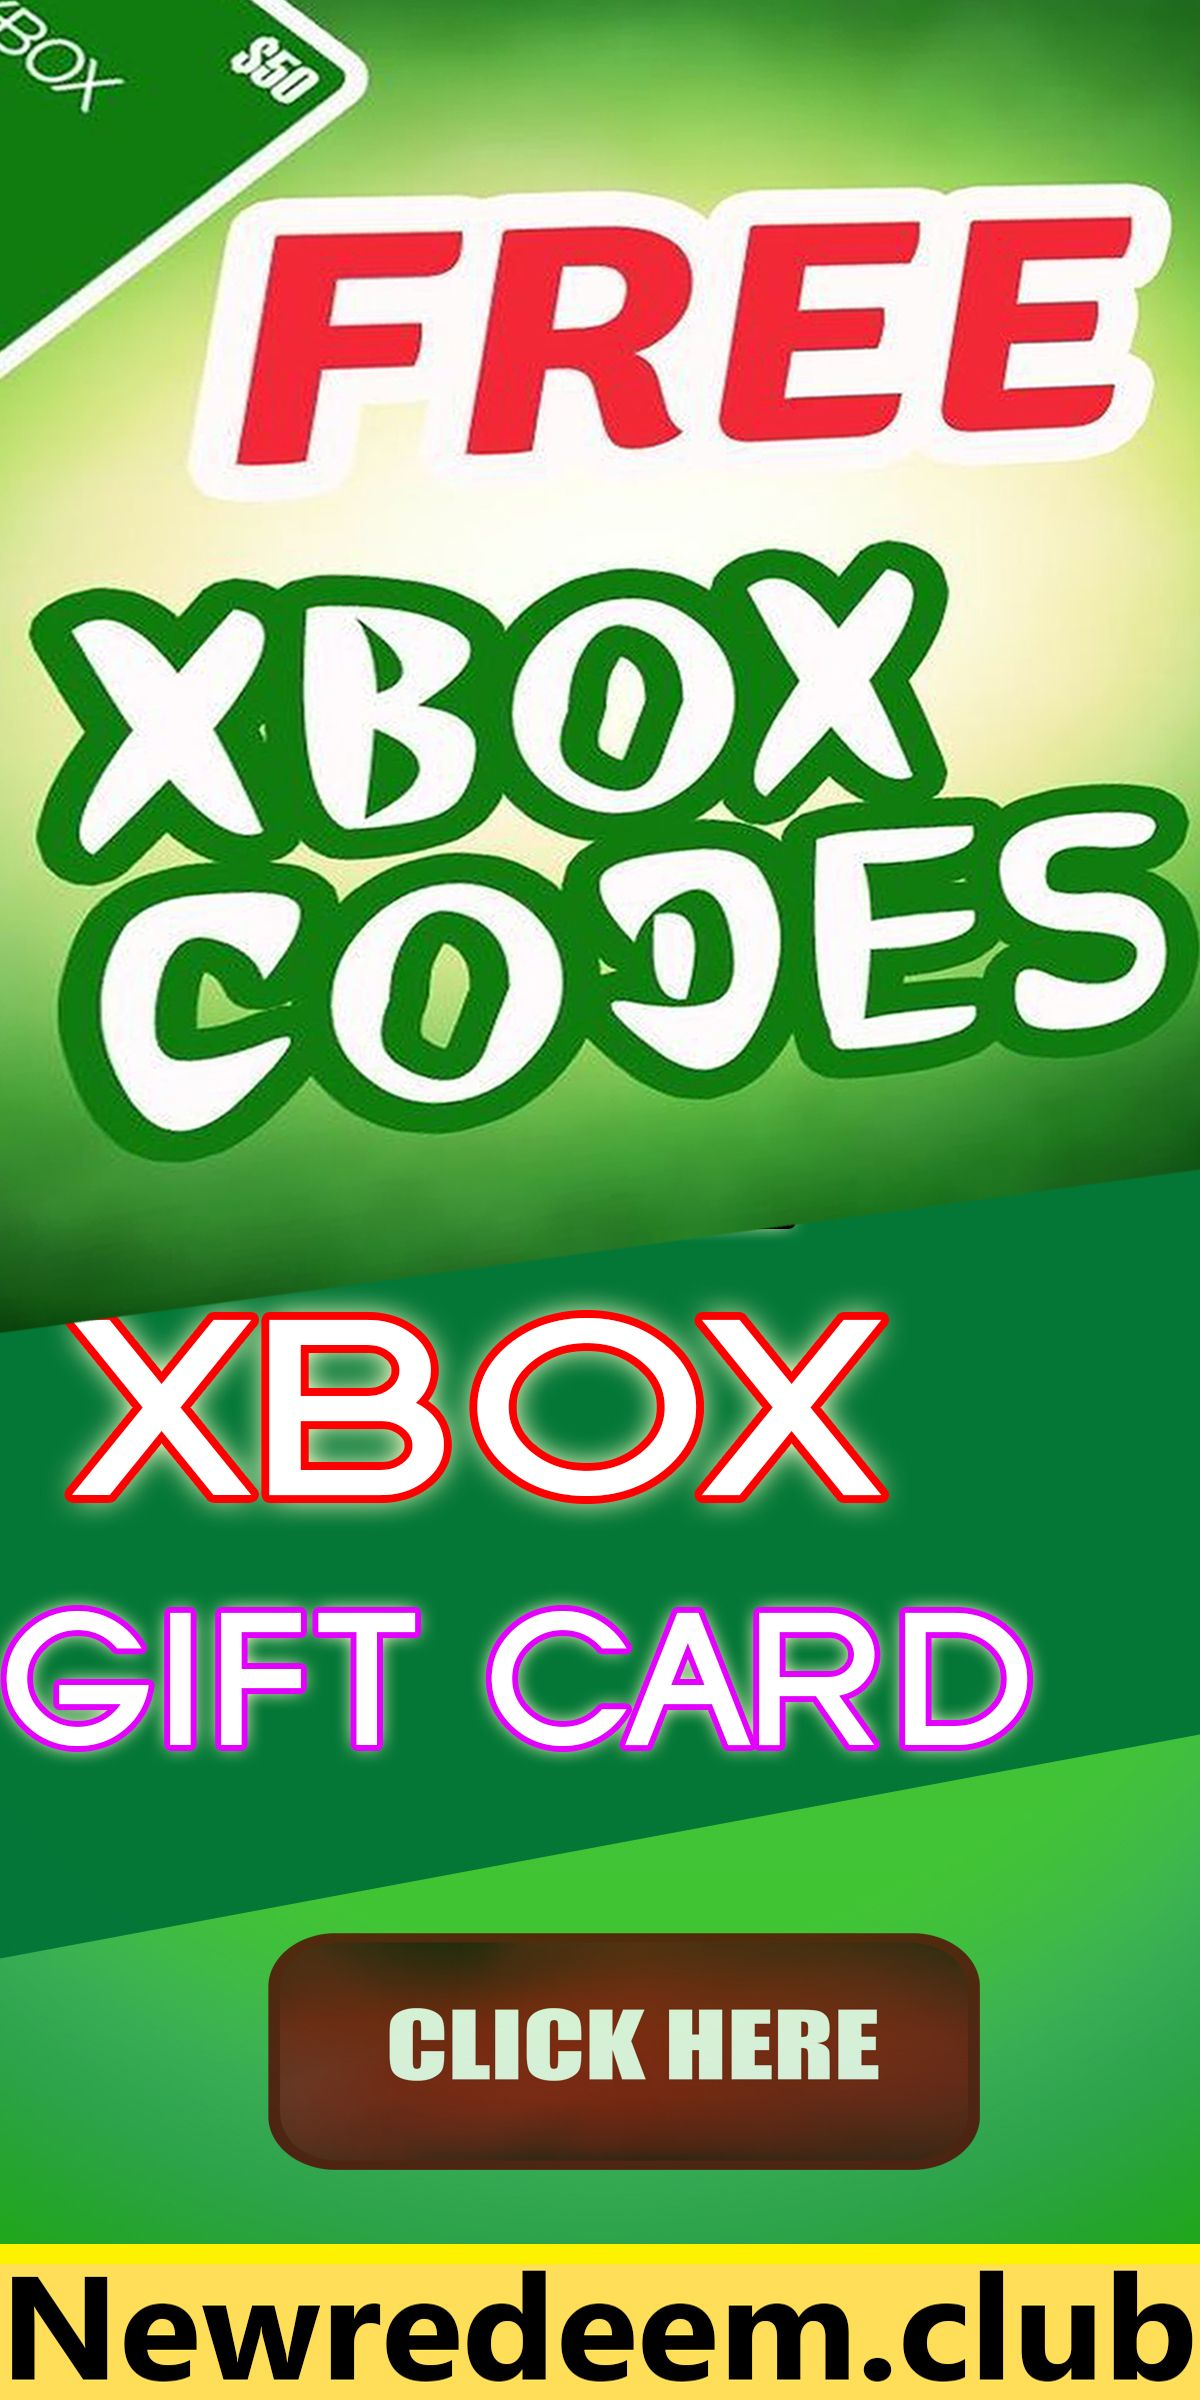 Free xbox live gold codes - xbox gift card codes generator ...